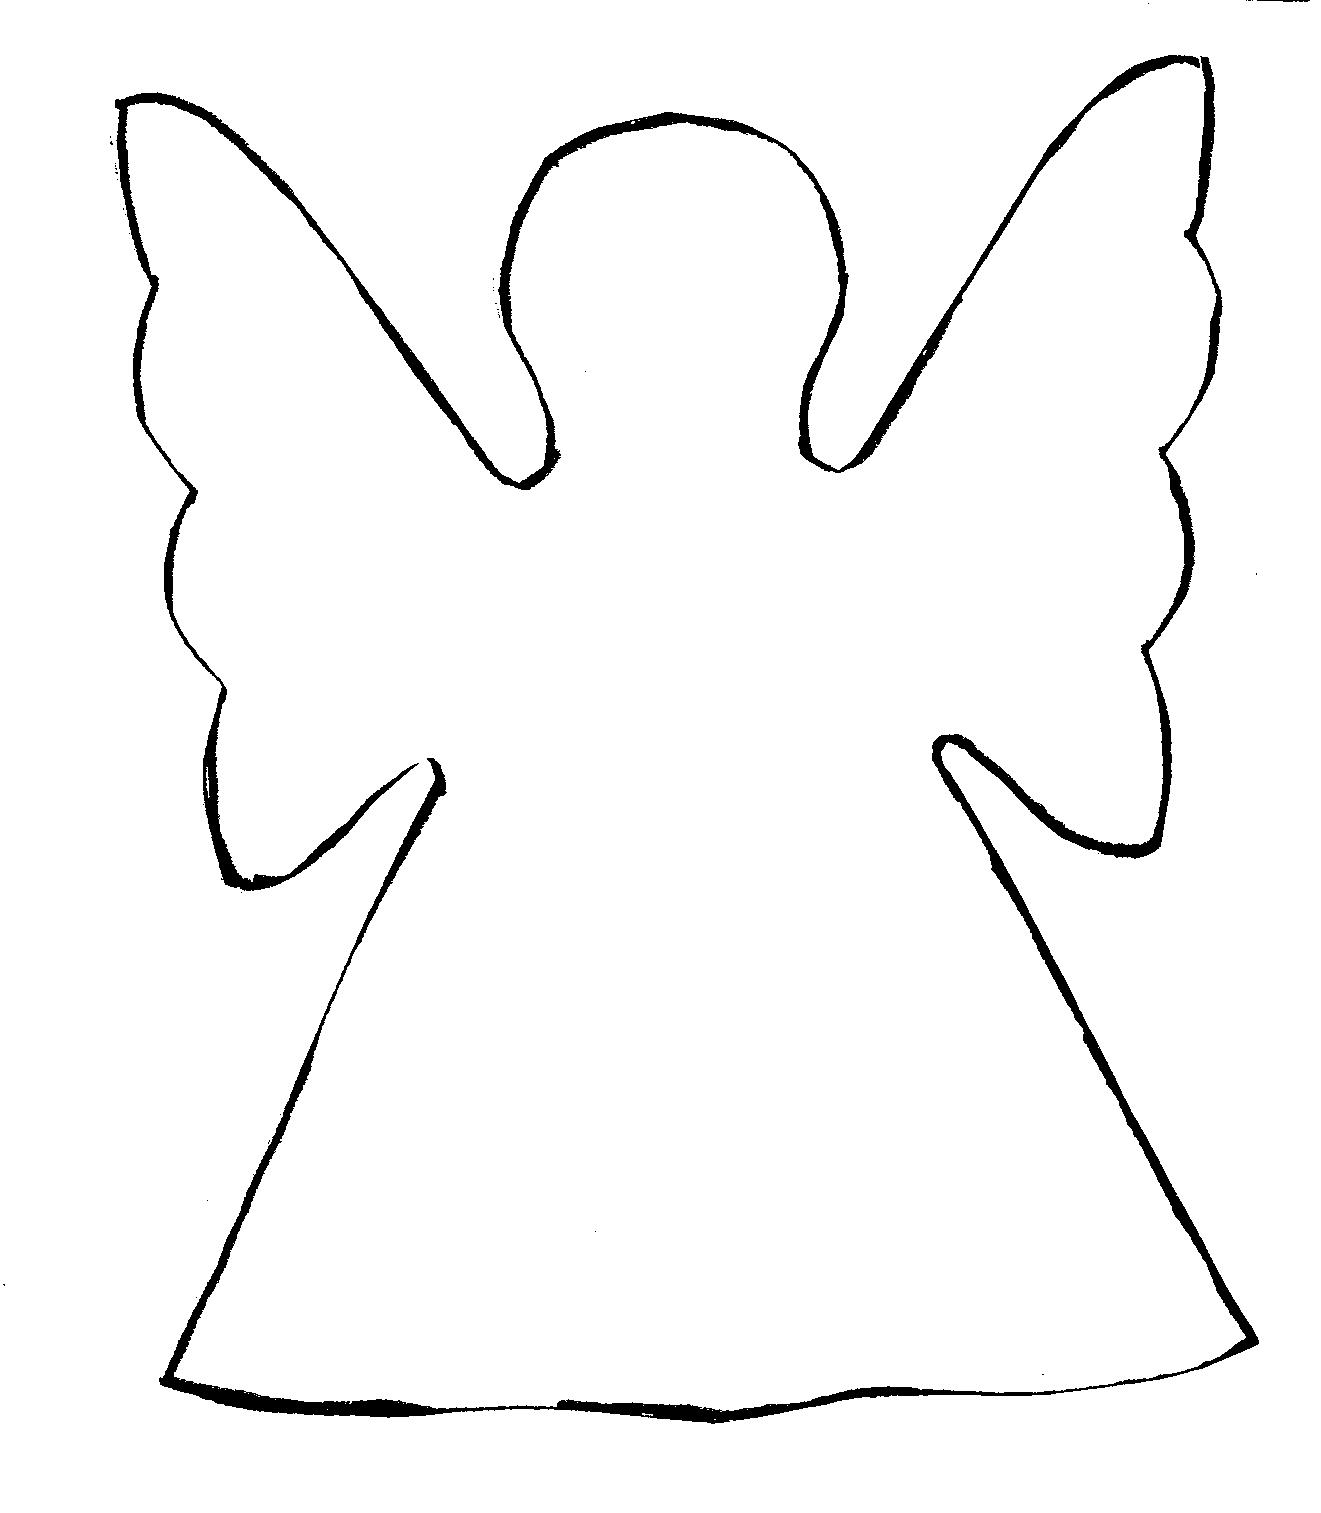 angel wing cut out template - photo #31